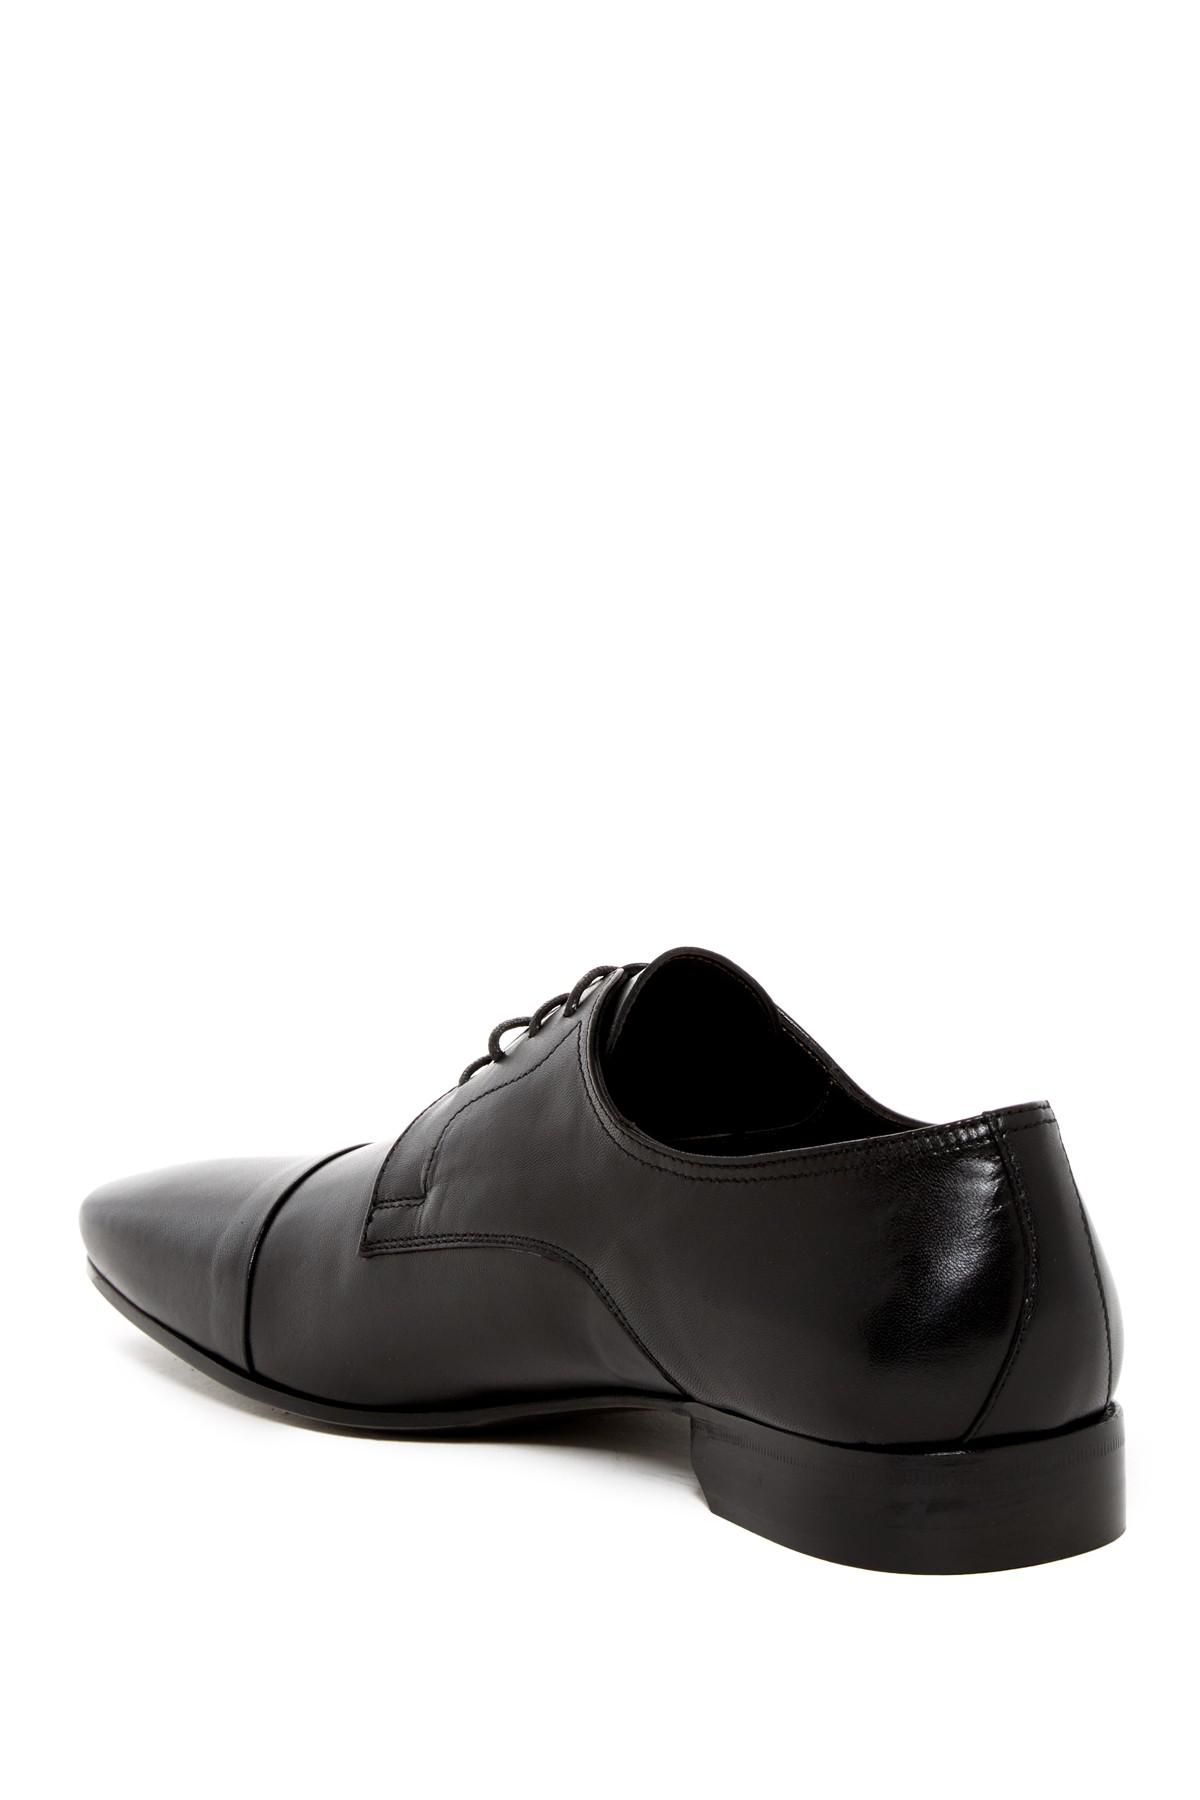 2295b56e6ed ... Cap Toe Leather Derby - Wide Width Available for Men -. View fullscreen